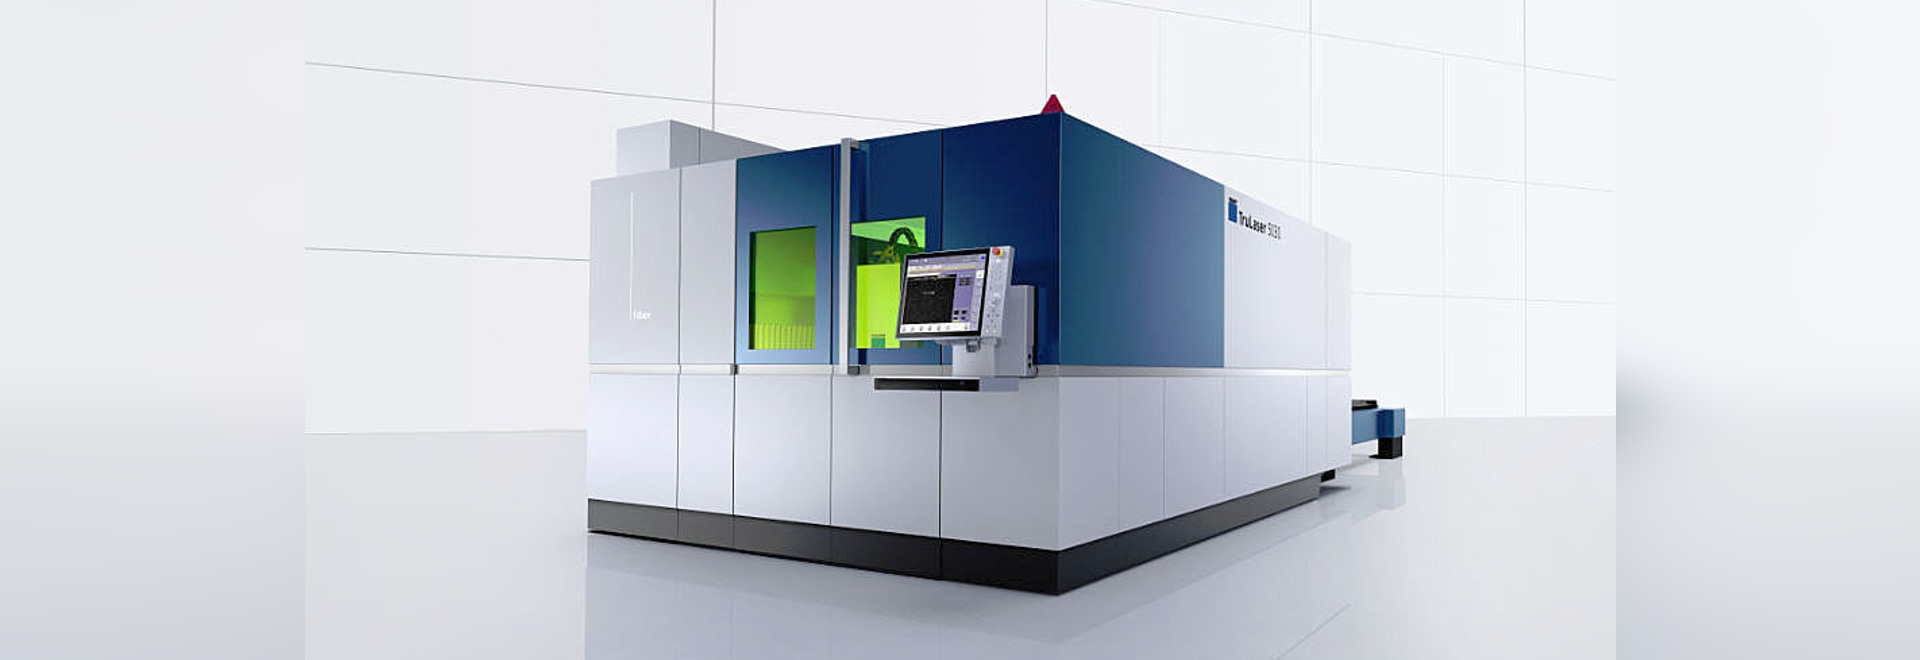 A productive machine for 2D laser cutting – the TruLaser 5030 fiber